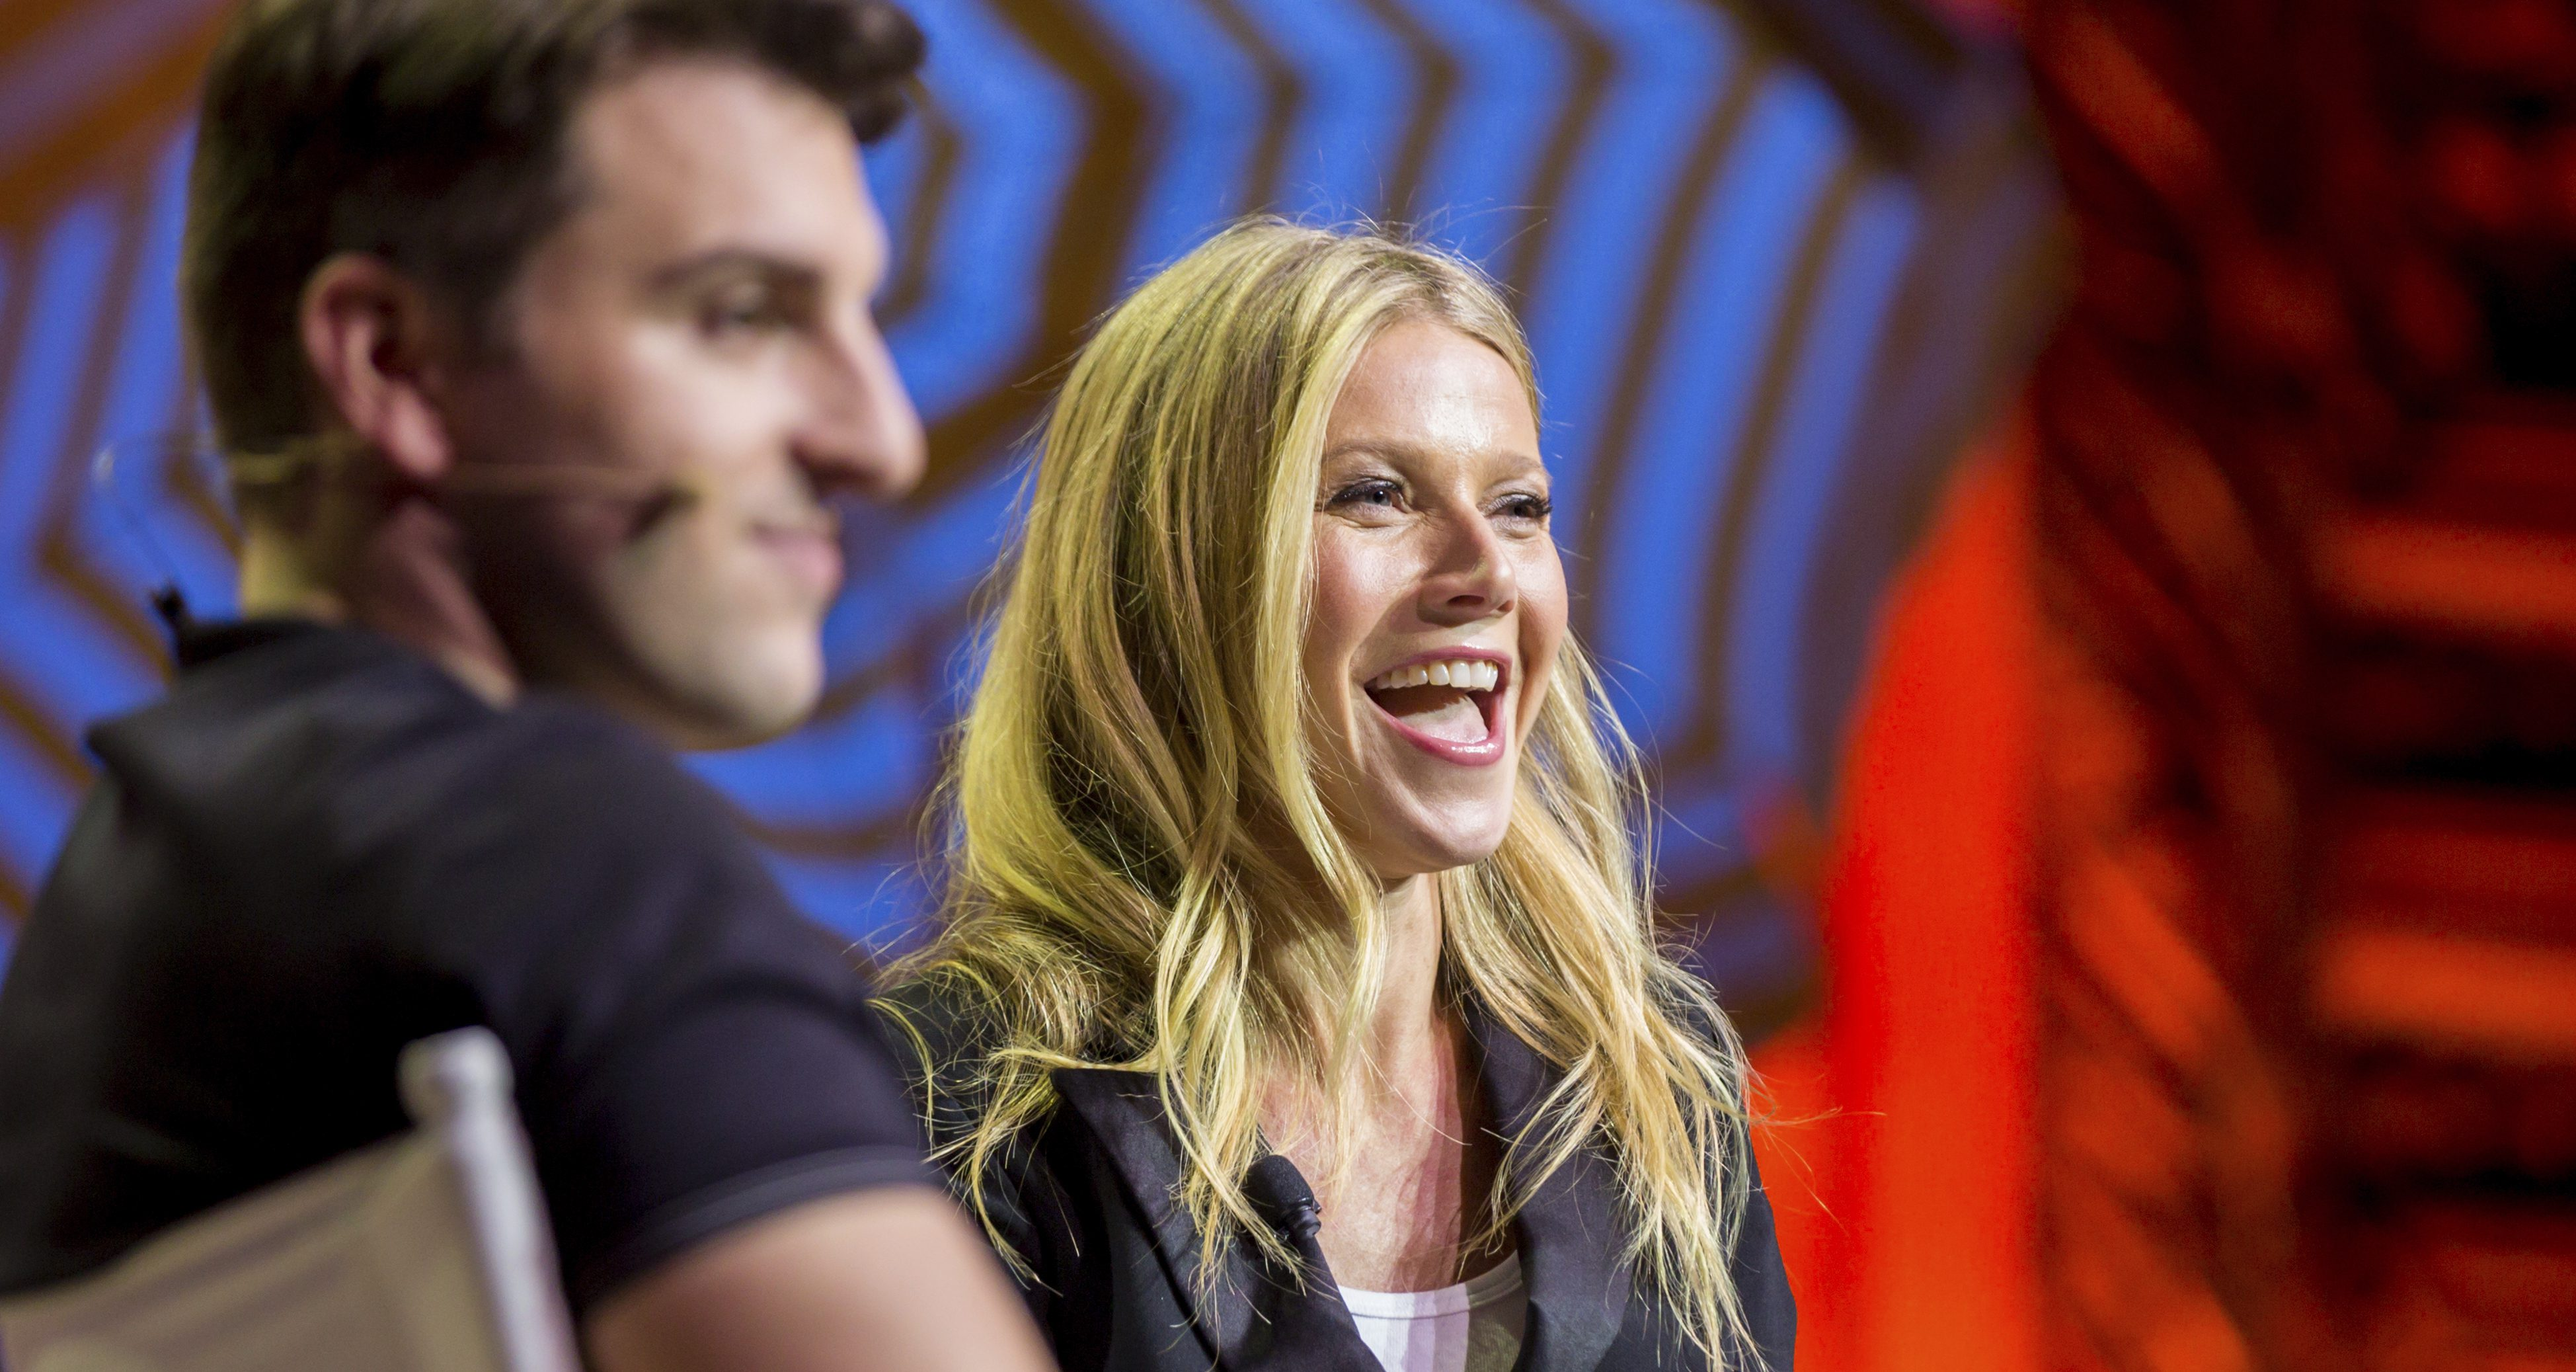 Gwyneth Paltrow and Brian Chesky onstage at the 2016 Airbnb open